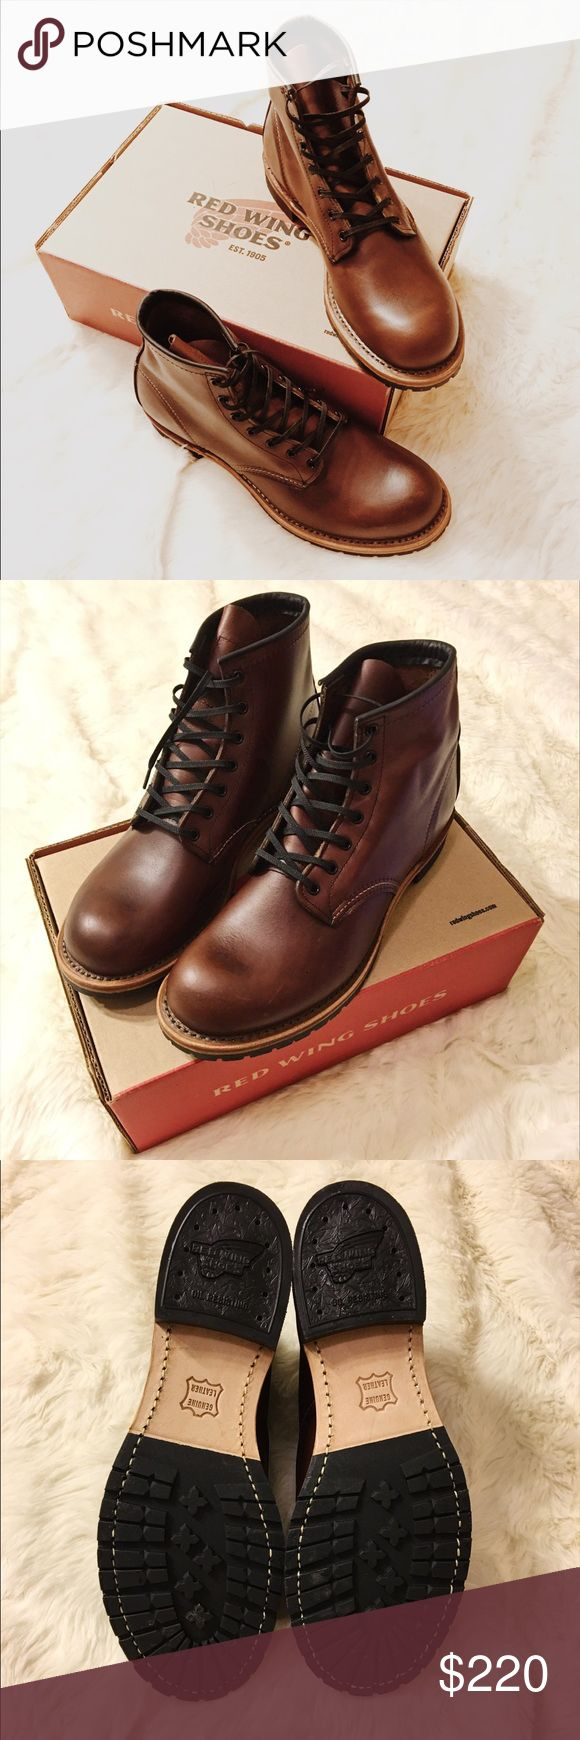 "Red Wing Shoes Heritage Beckman 6"" Round Toe👞 Red Wing Shoes Heritage Beckman 6"" Round Toe. Size 9.5 Men's in Cigar. BRAND NEW!! UNWORN!! Comes with original box. Purchased from the original Red Wing Boots store in Red Wing, Minnesota! Bought this pair of boots as a factory second for $250 ($100 off MSRP) as it has a few scuffs on the leather but other than that it's virtually brand new. Still has the new leather smell!!  $350 MSRP Red Wing Shoes Shoes Boots"